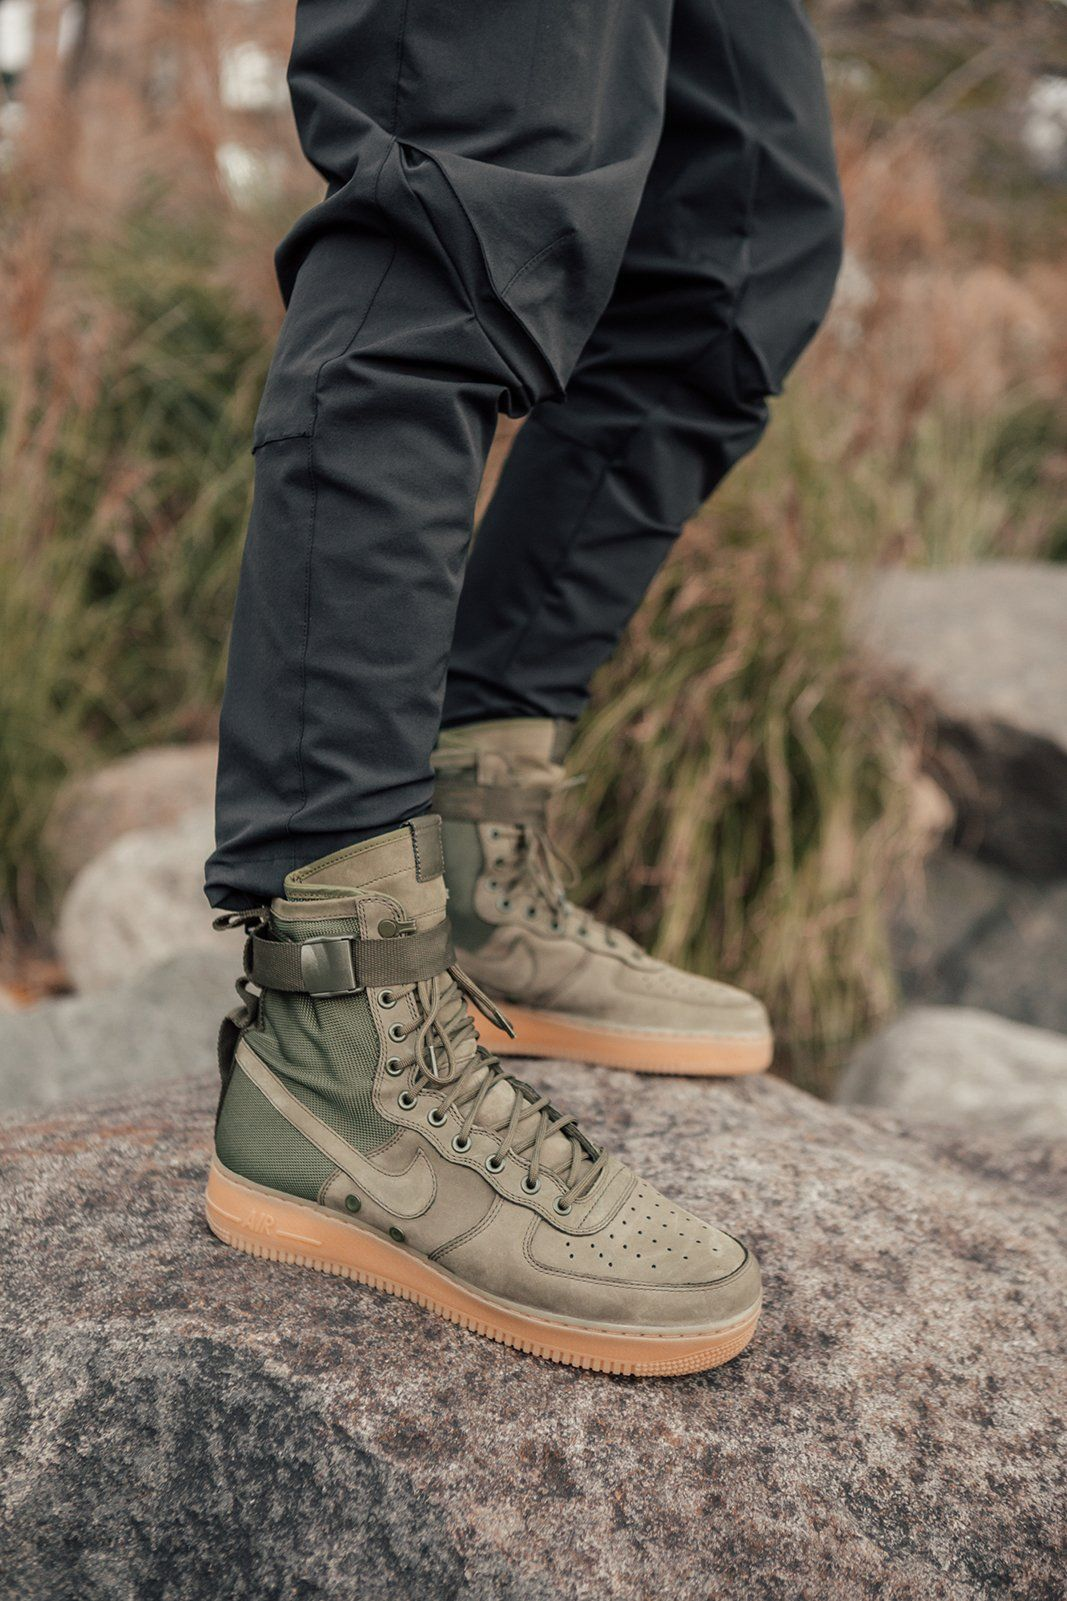 100% authentic dd09f 5f2d2 Kith partners with Nike to shoot an editorial to launch the all-new SF AF-1  collection. The Air Force 1 s classic design has been the foundation for a  ...